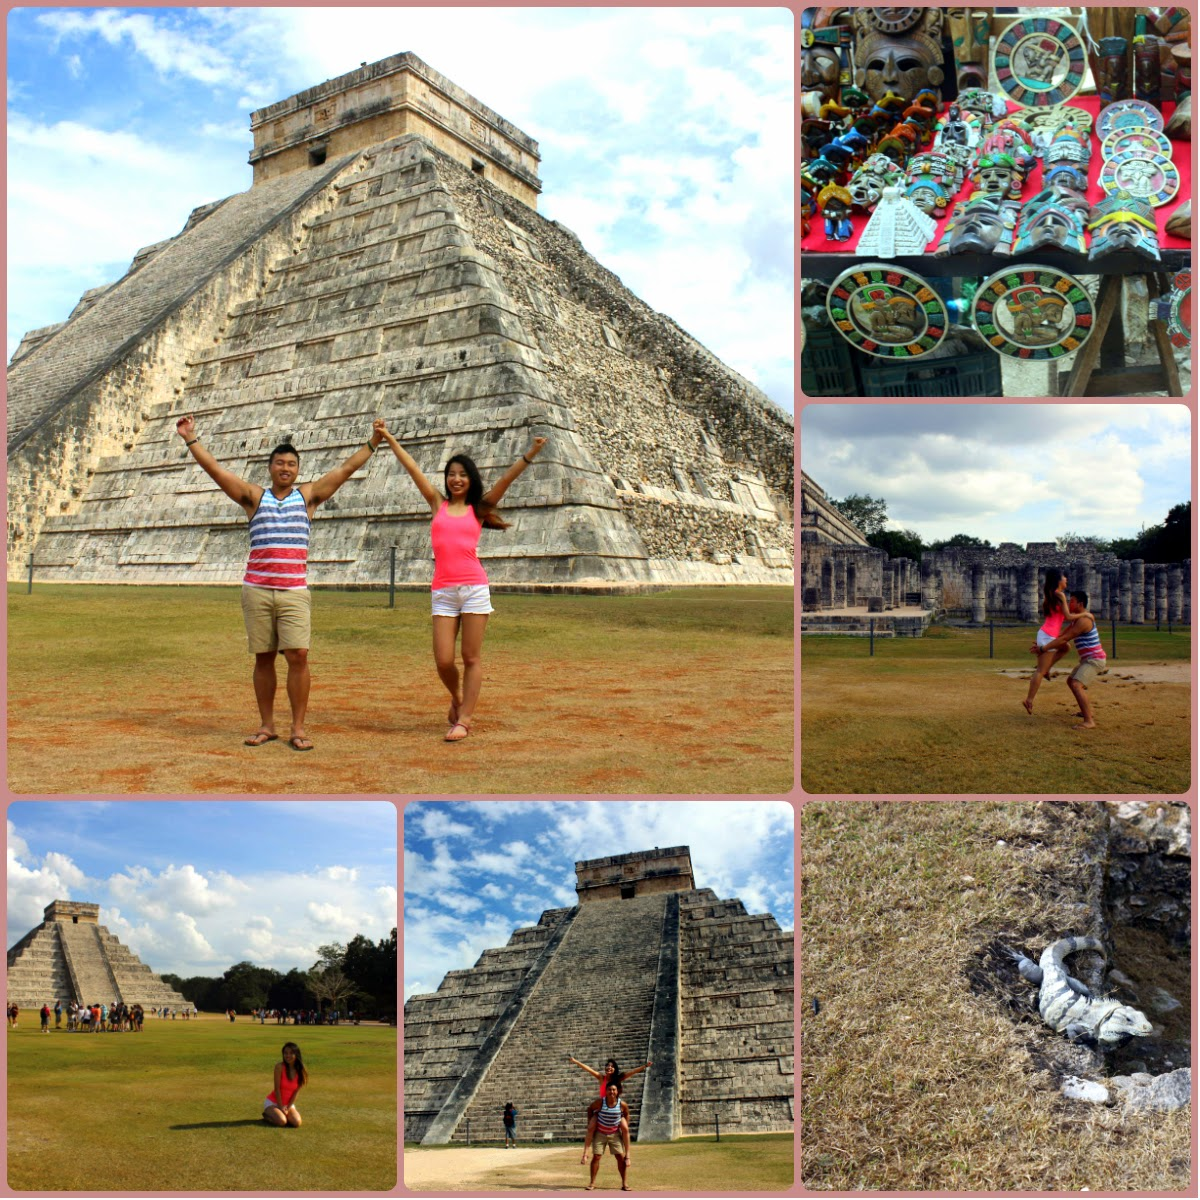 cancun chichen itza review